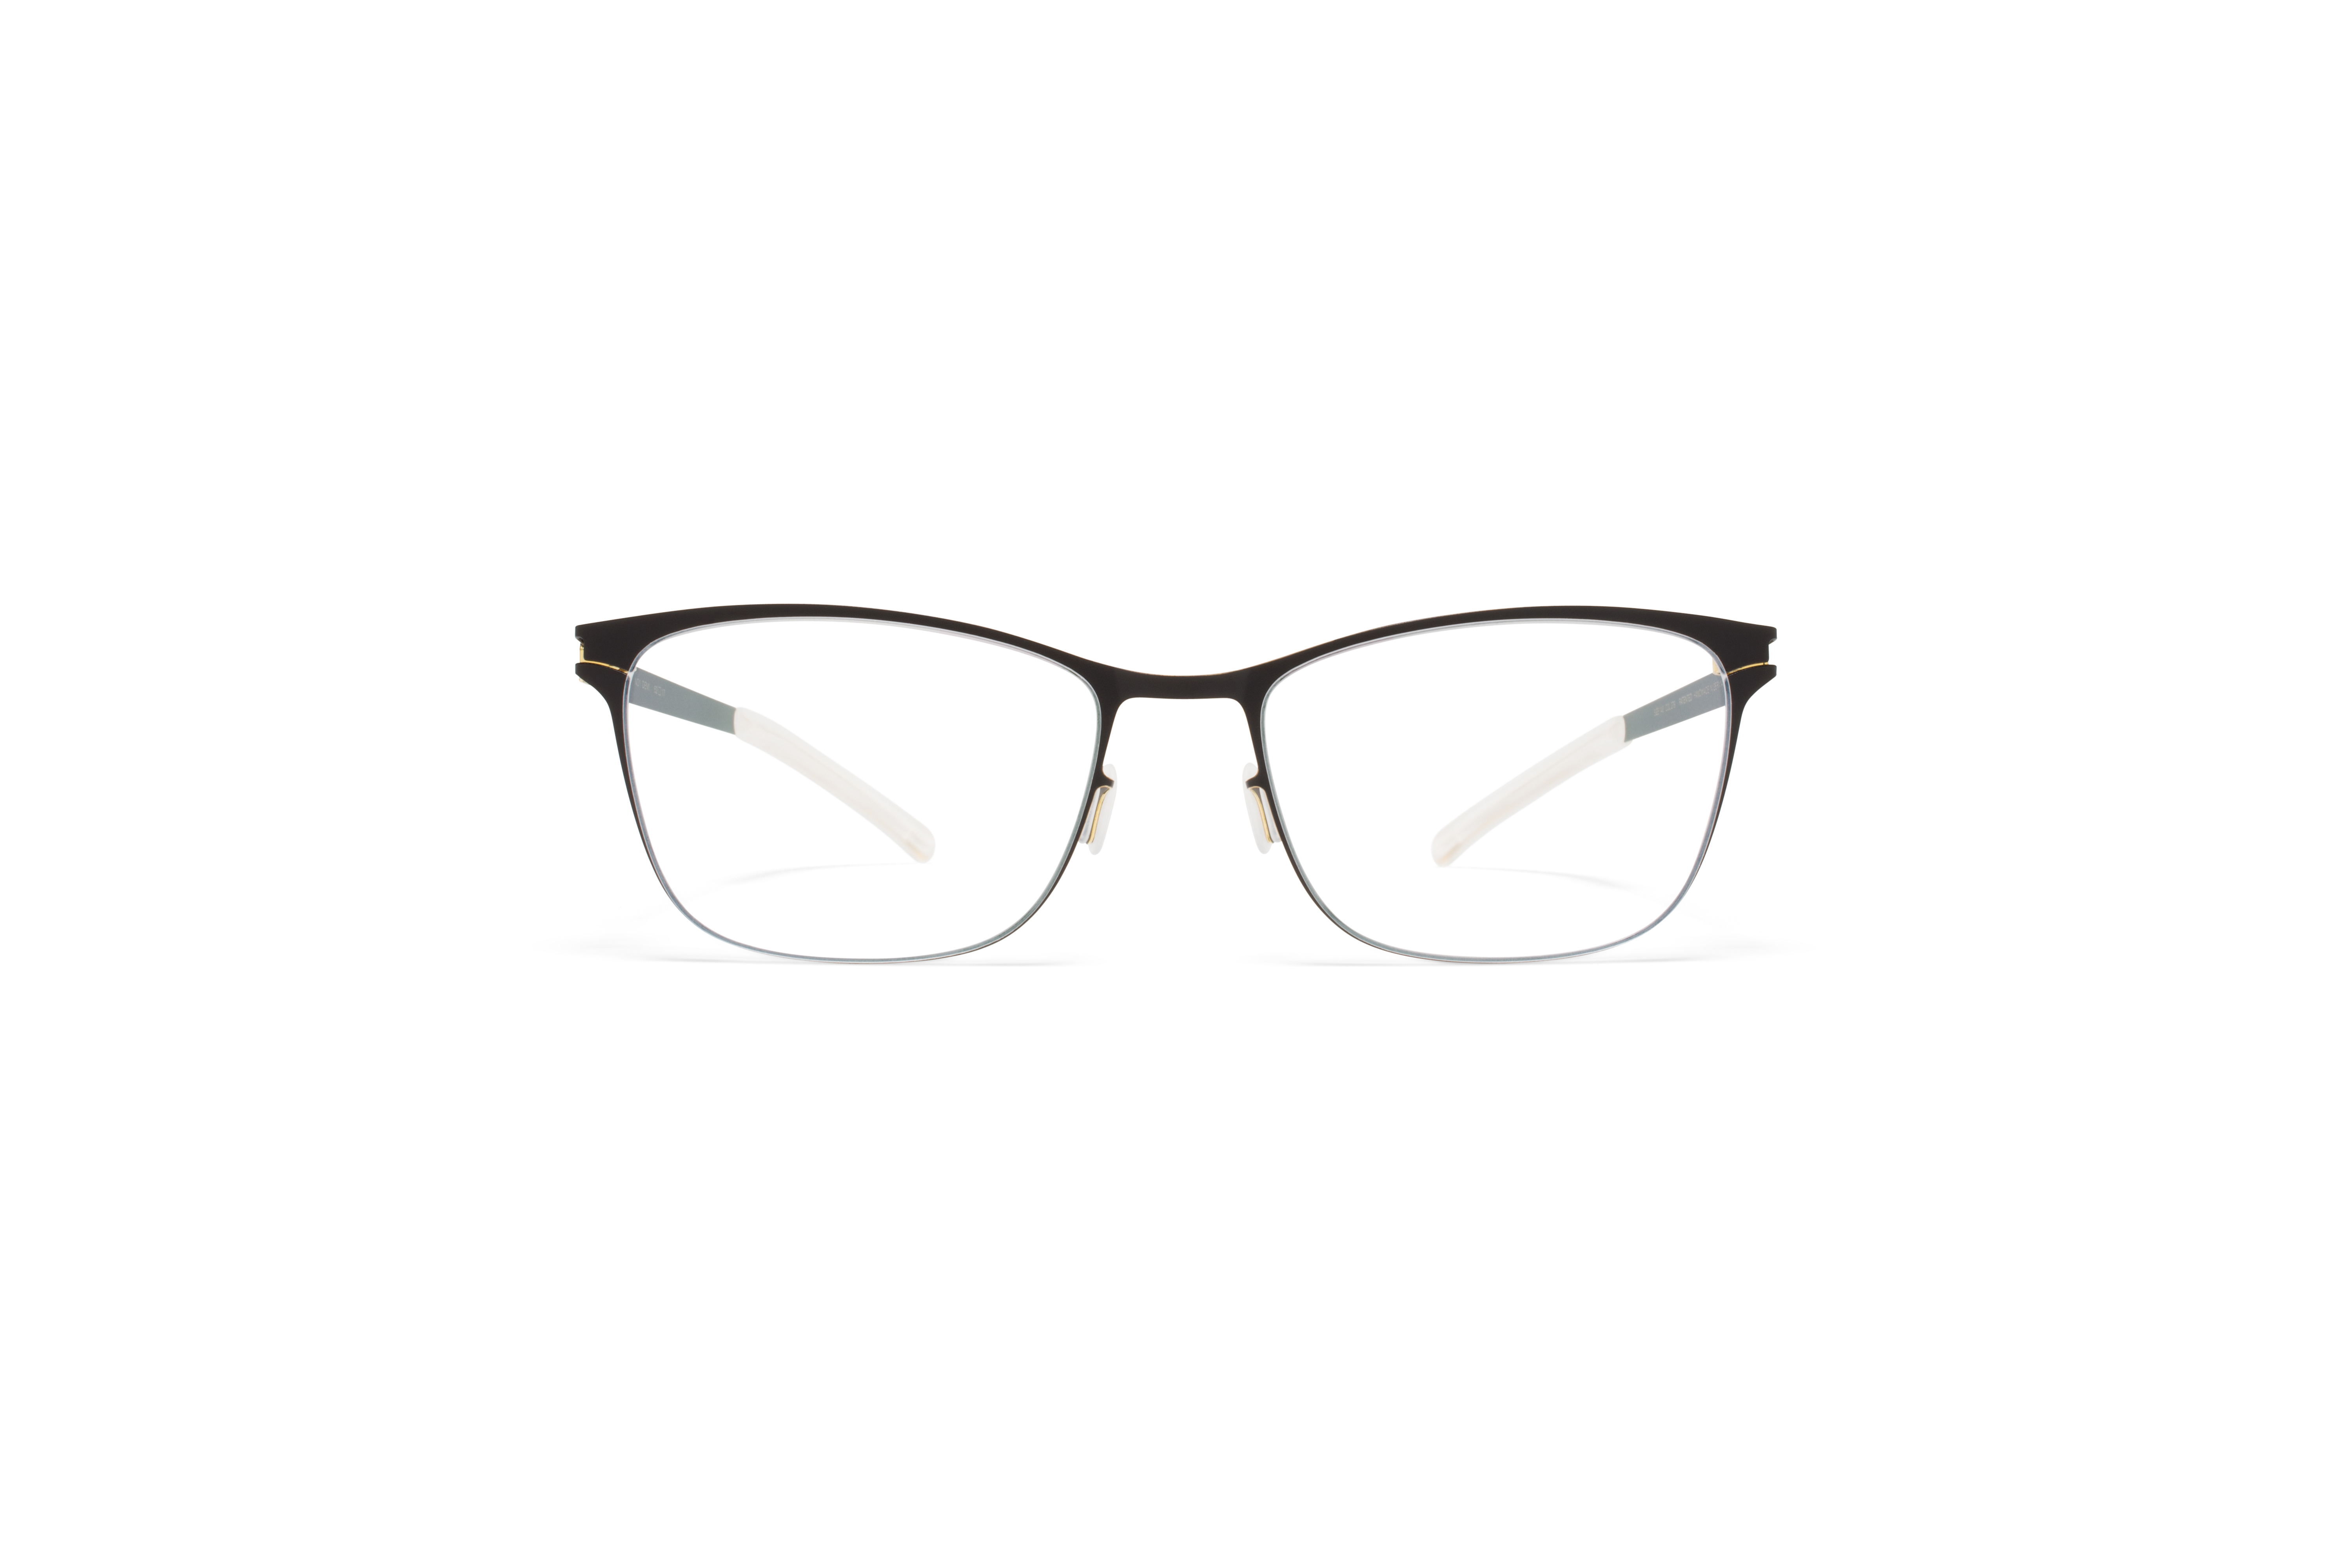 e28f925b3c6 MYKITA No1 Rx Demi Black Gold Edges Clear